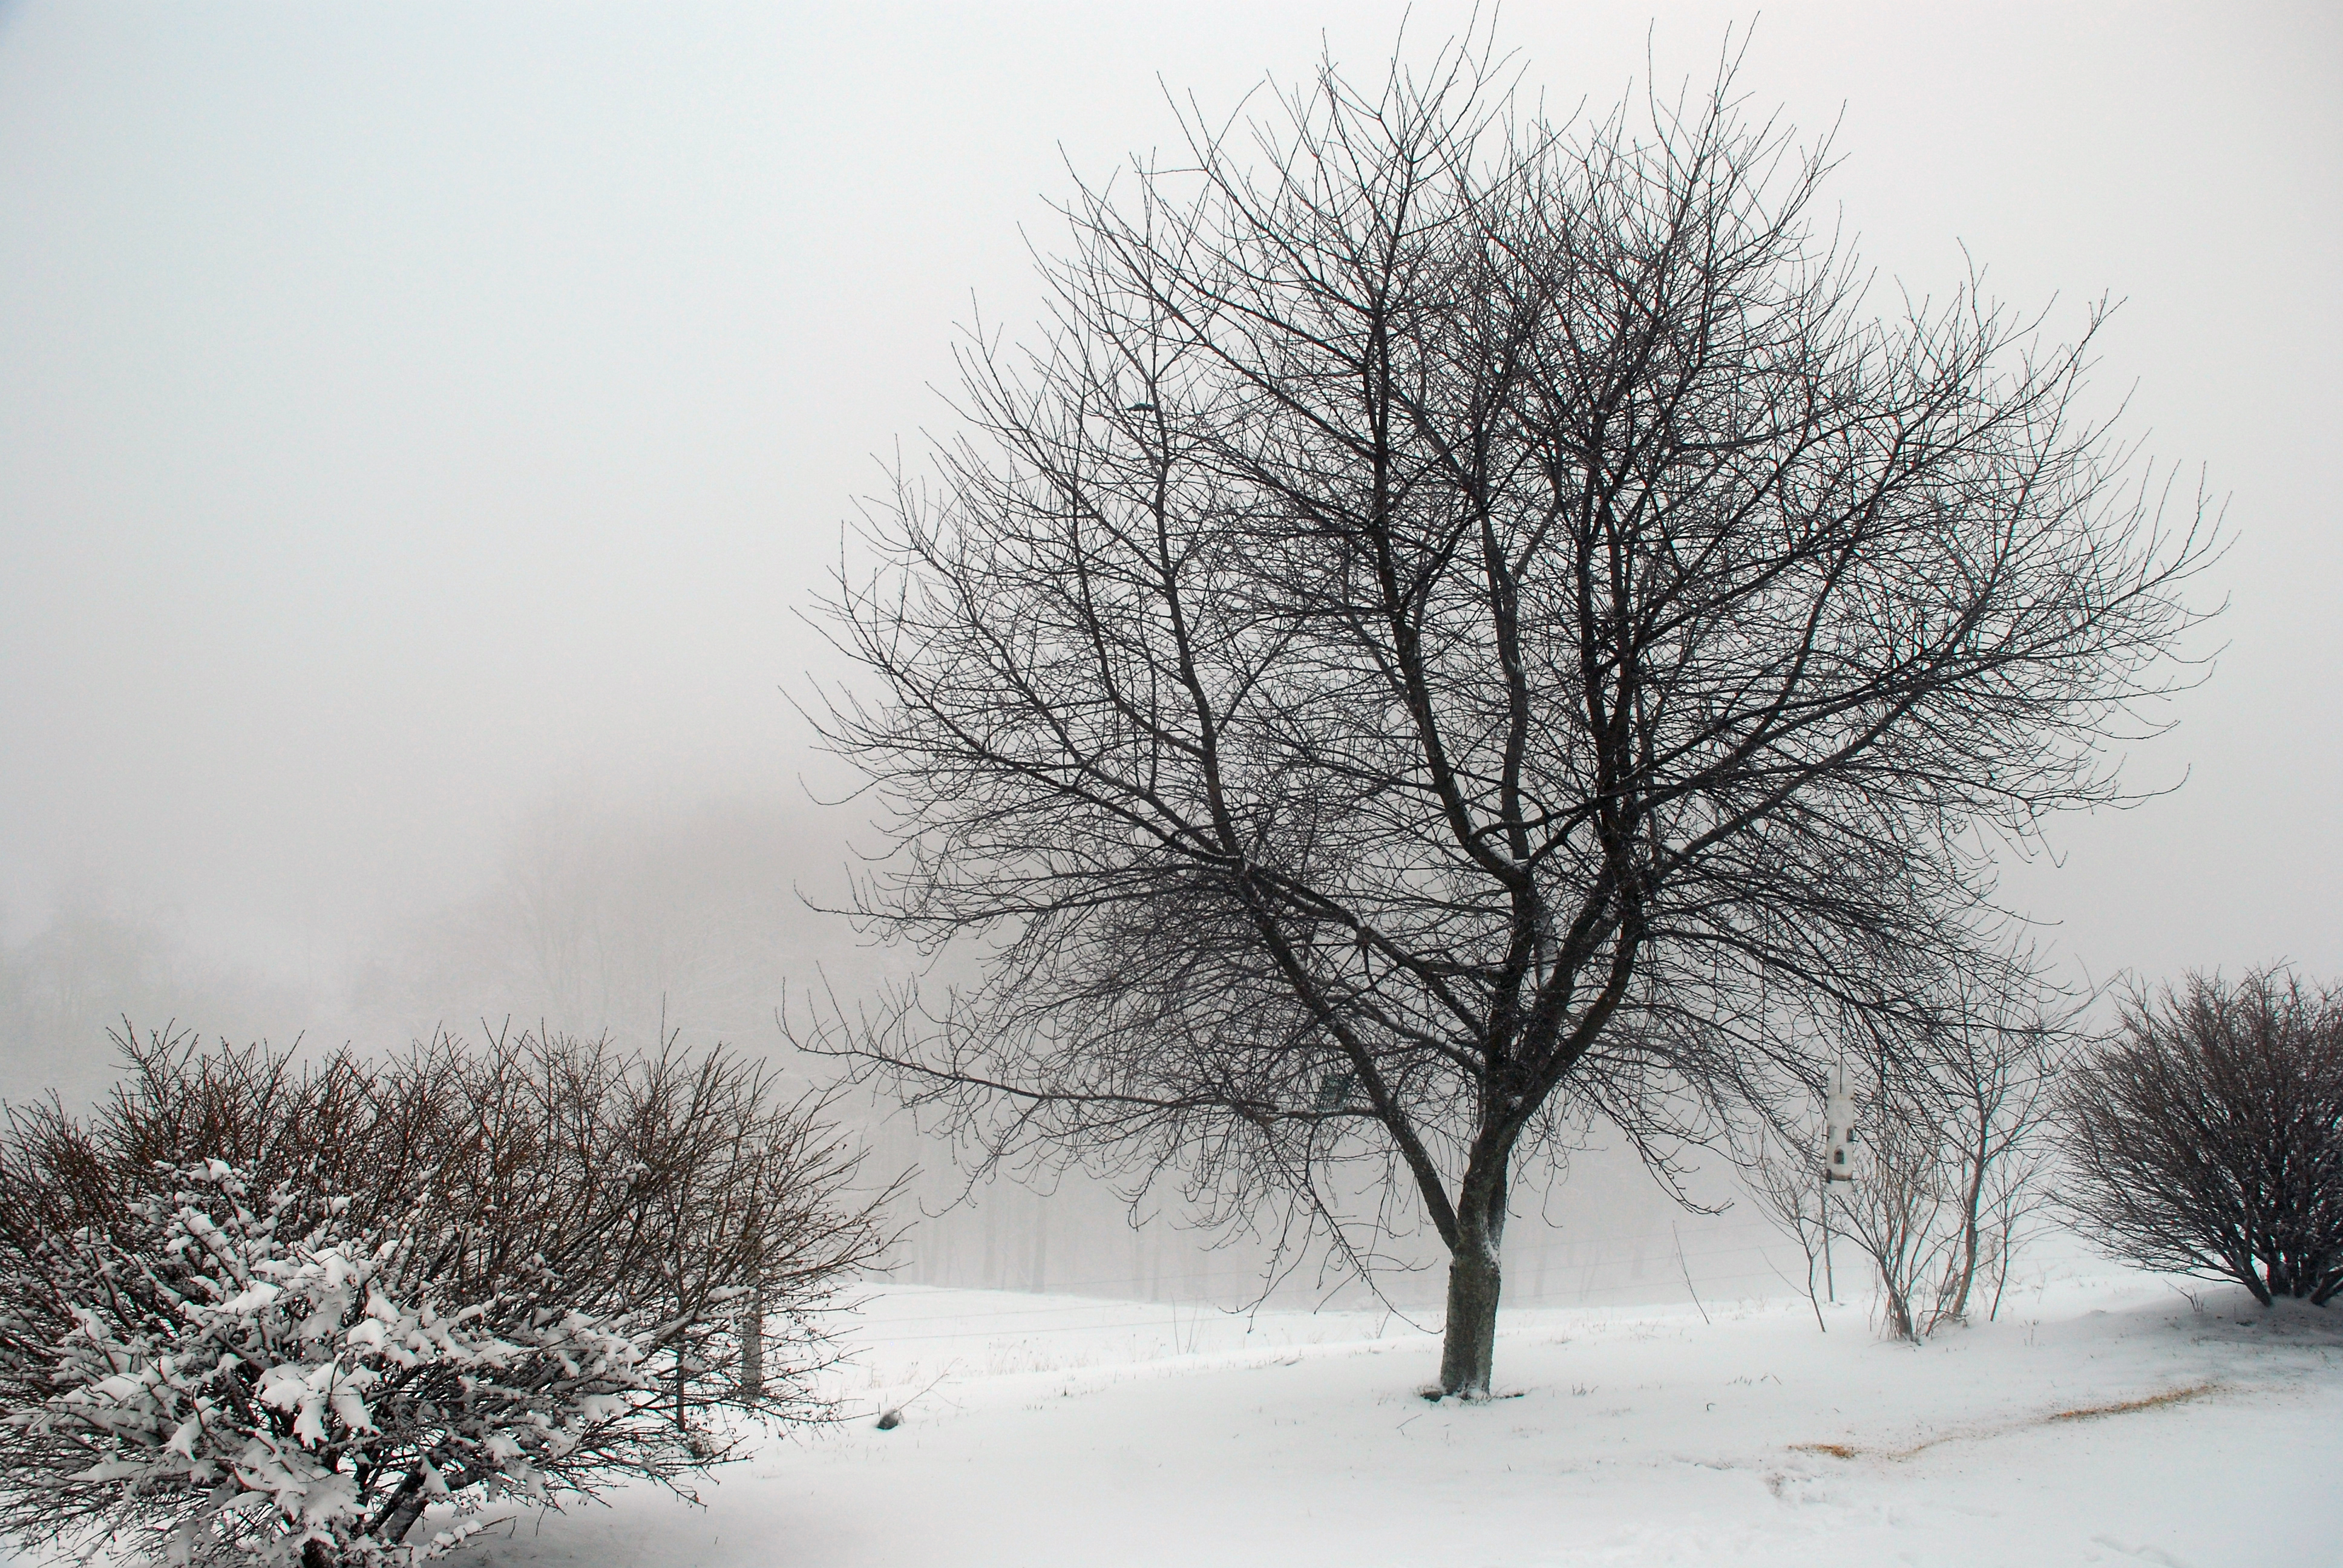 Cherry Tree in the Fog and Snow